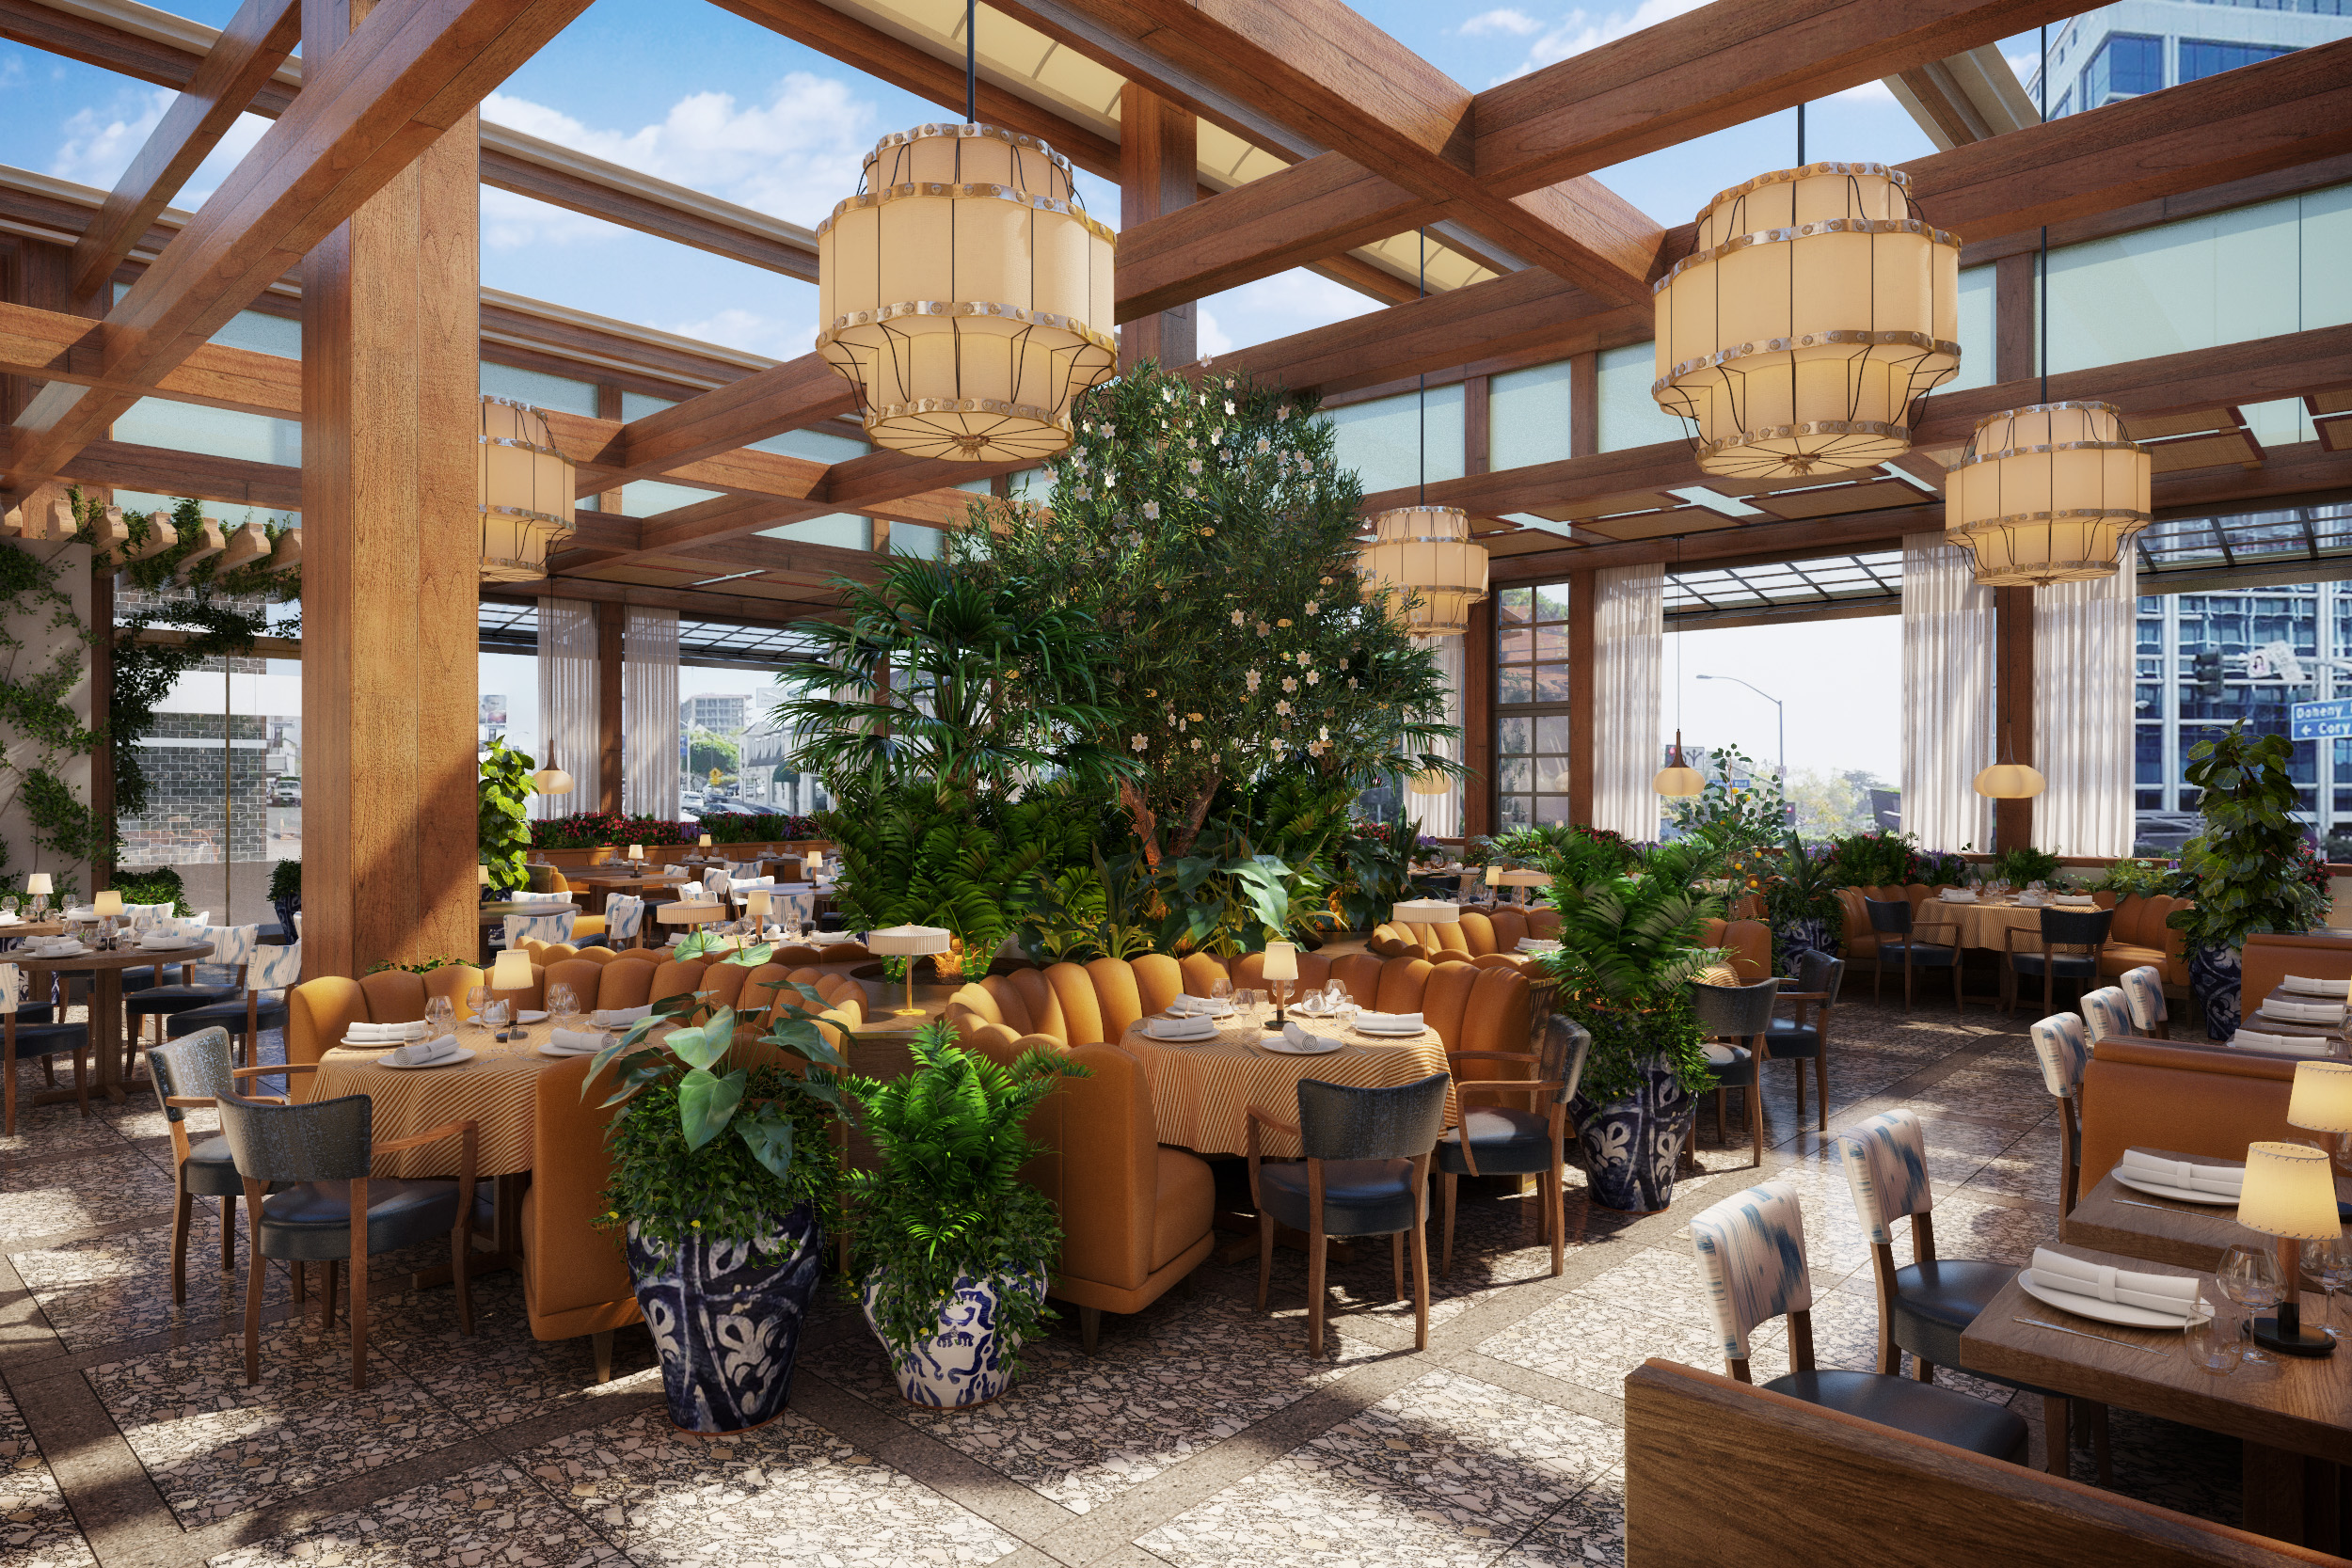 A rendering of an open-air dining room with plants and big booths and views across the street.